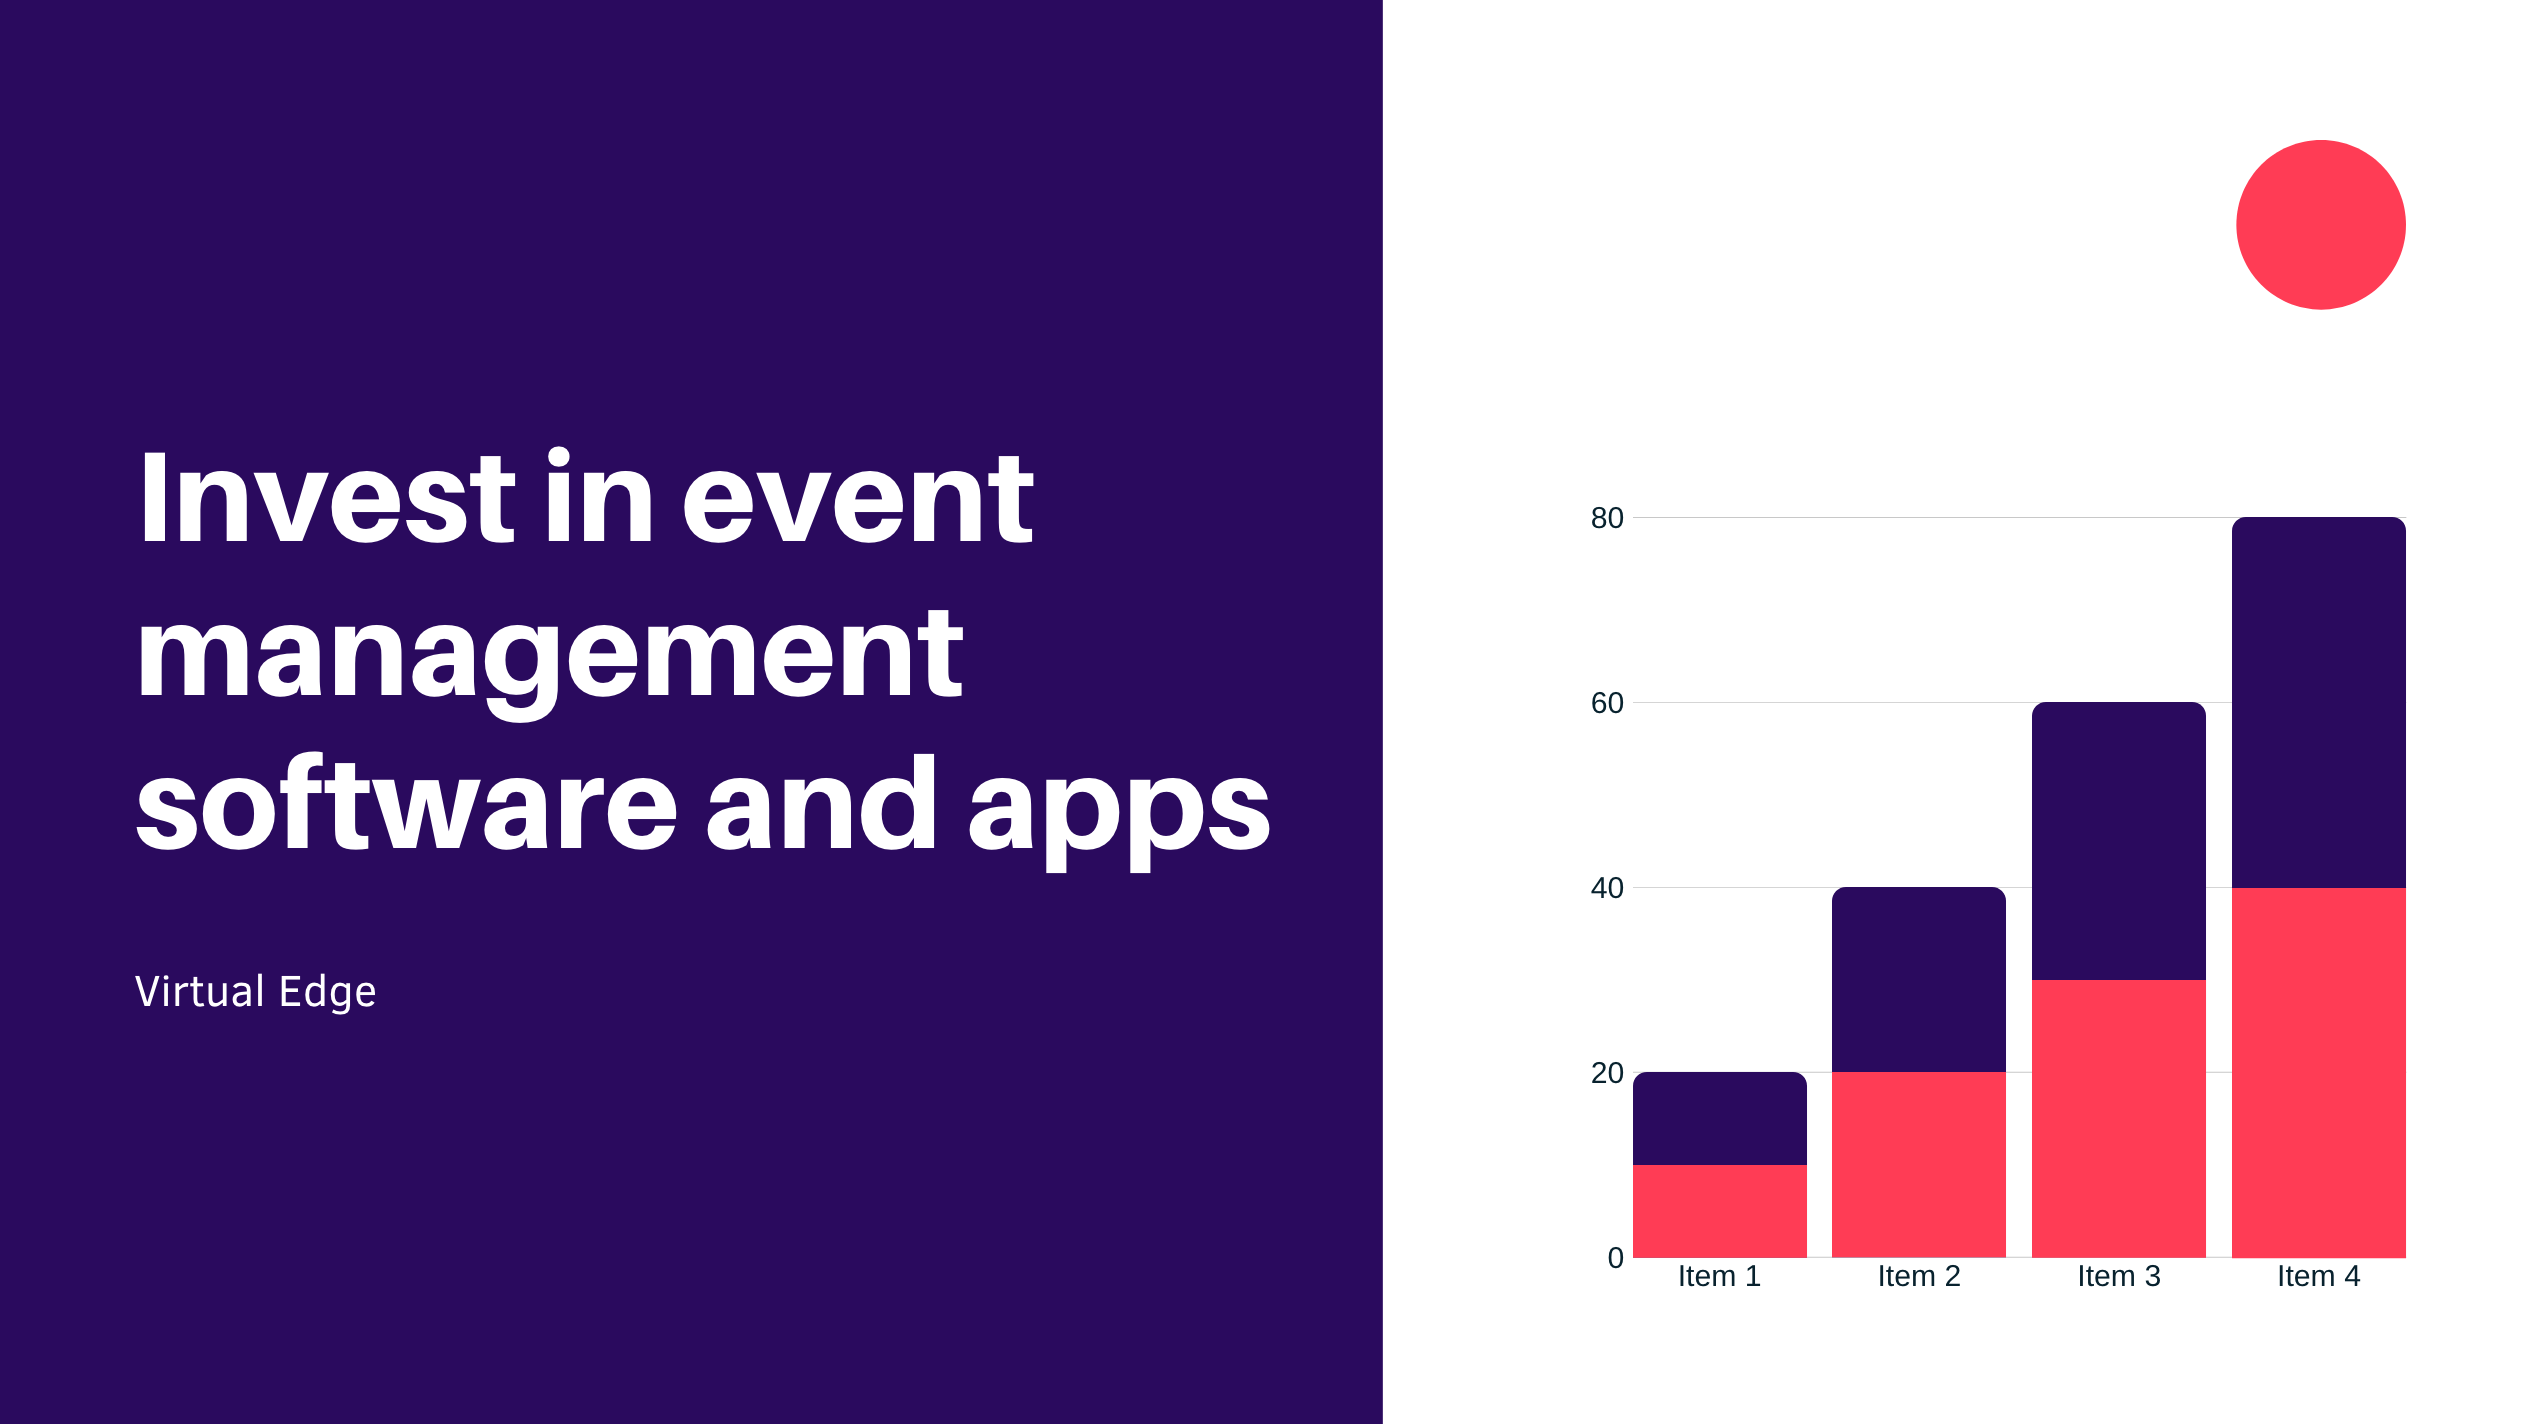 Invest in event management software and apps